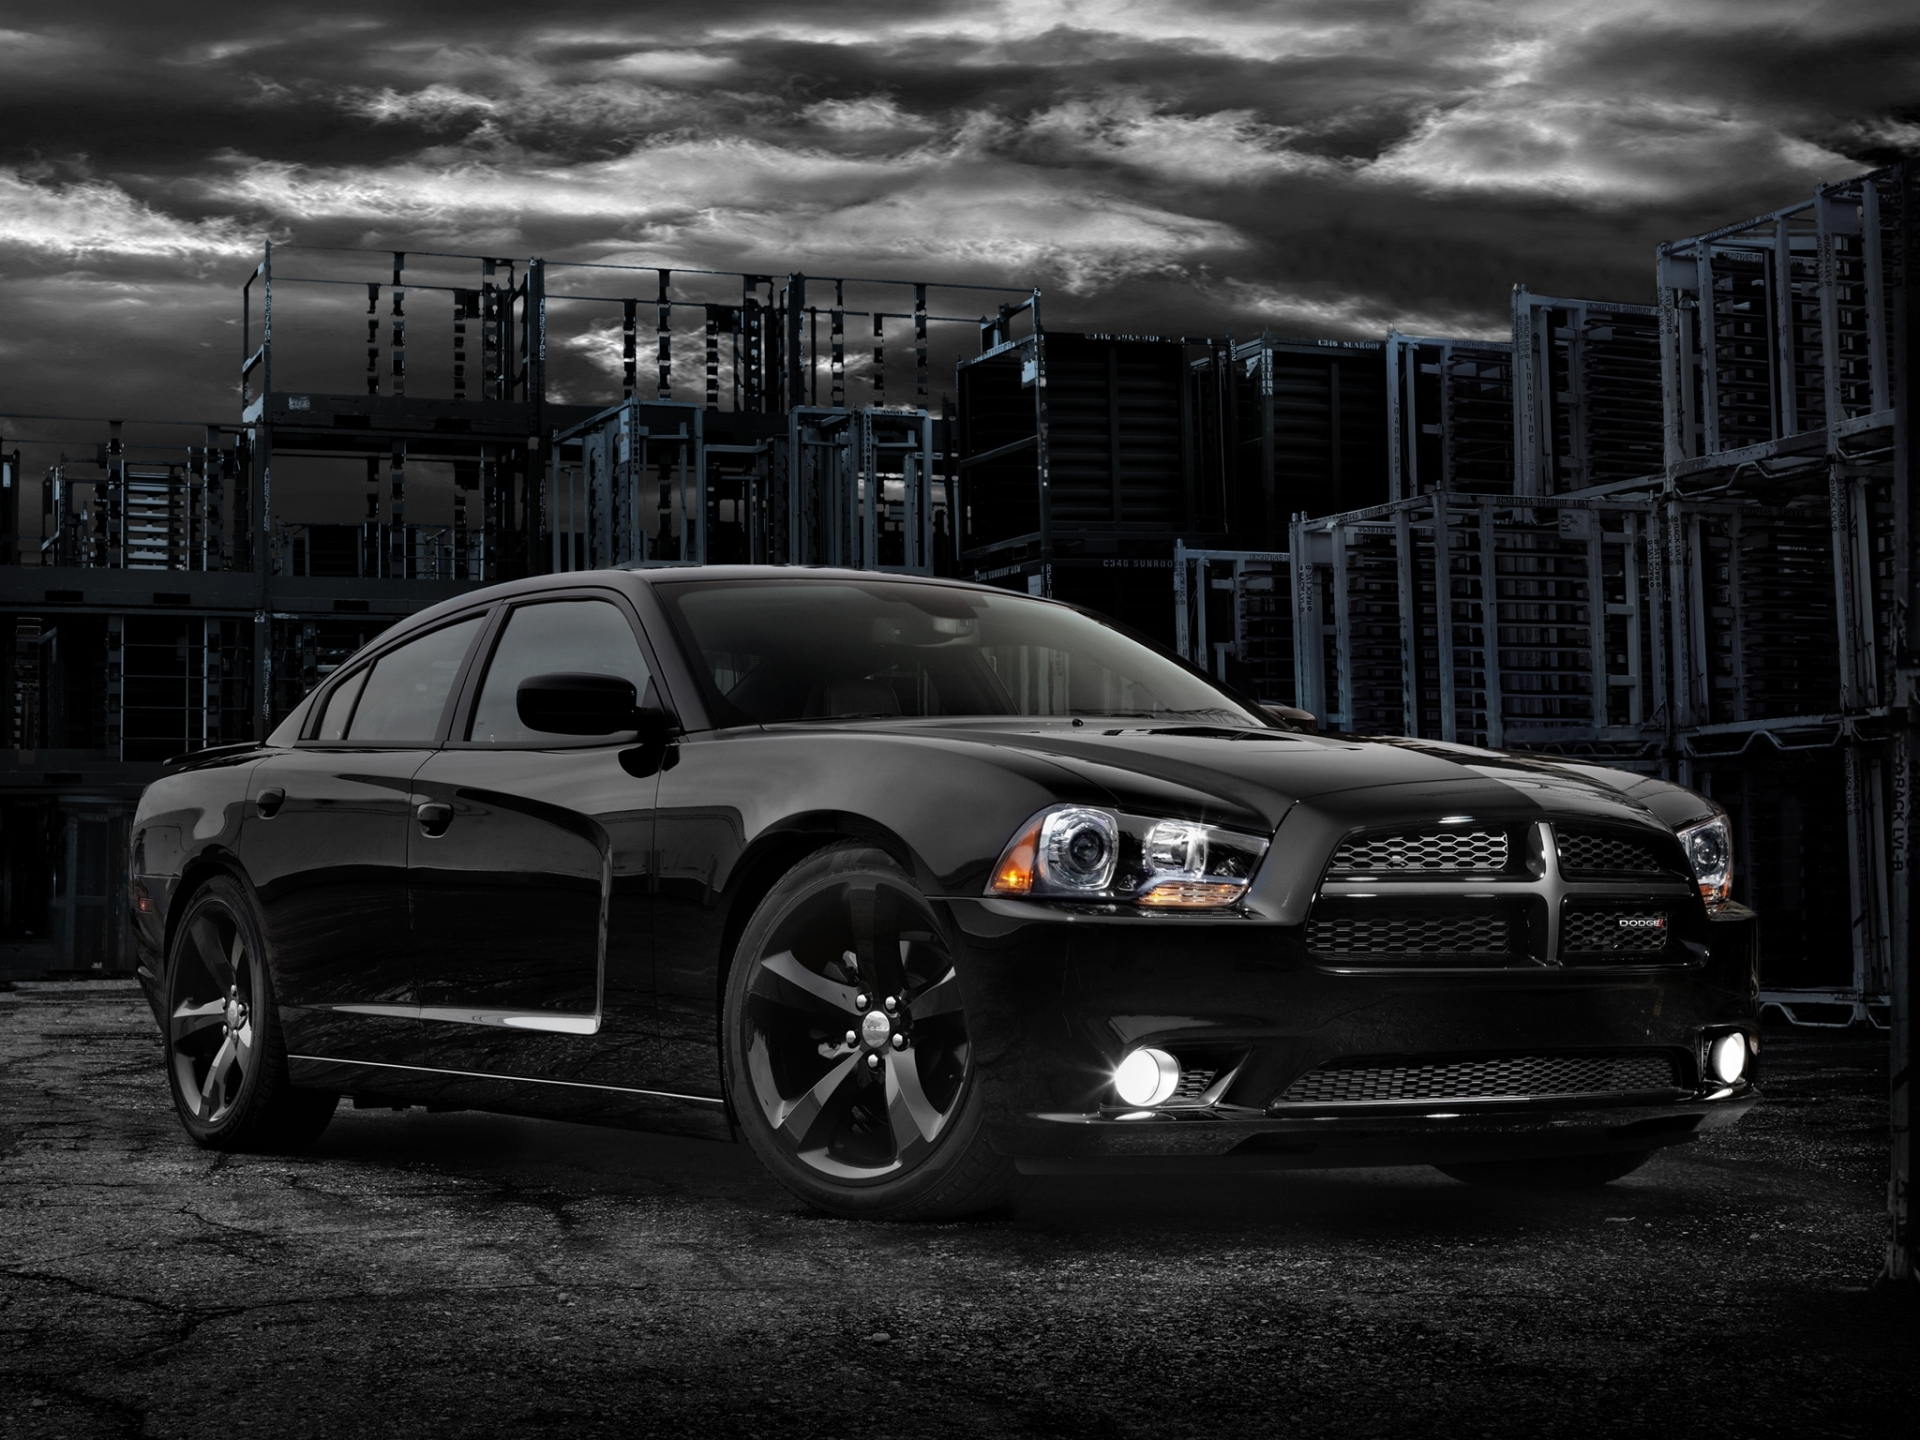 vehicles dodge charger wallpaper